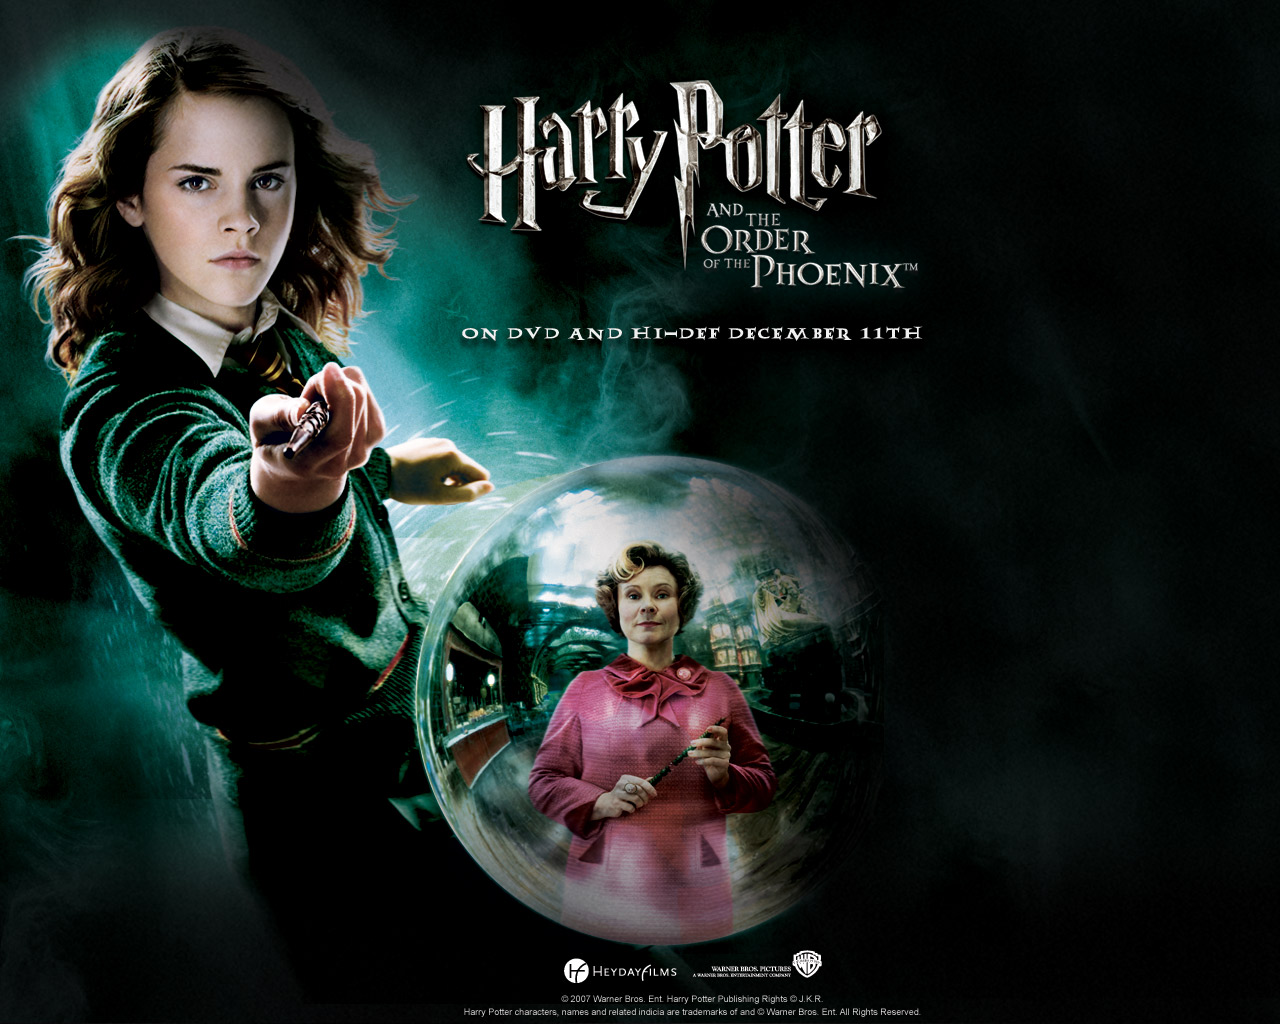 Harry Potter Order Of The Phoenix Movie Poster - HD Wallpaper